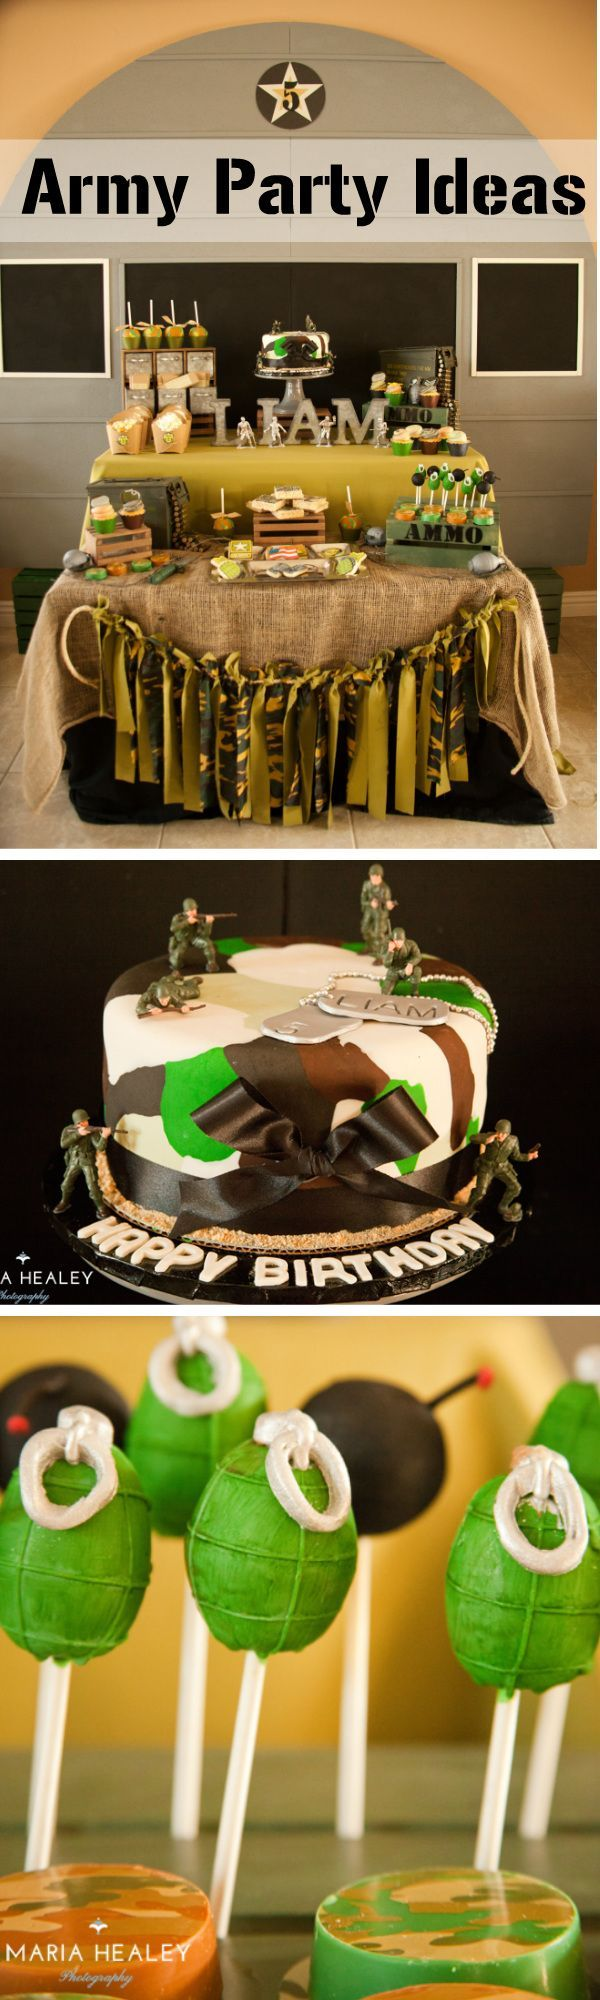 Enthralling Army Party Ideas By Party Army Birthday Camouflage Bomb Cake Grenade Cake Army Med Party Ideas Games Pinterest Plan It Green Login Plan It Green Landscape houzz-03 Plan It Green